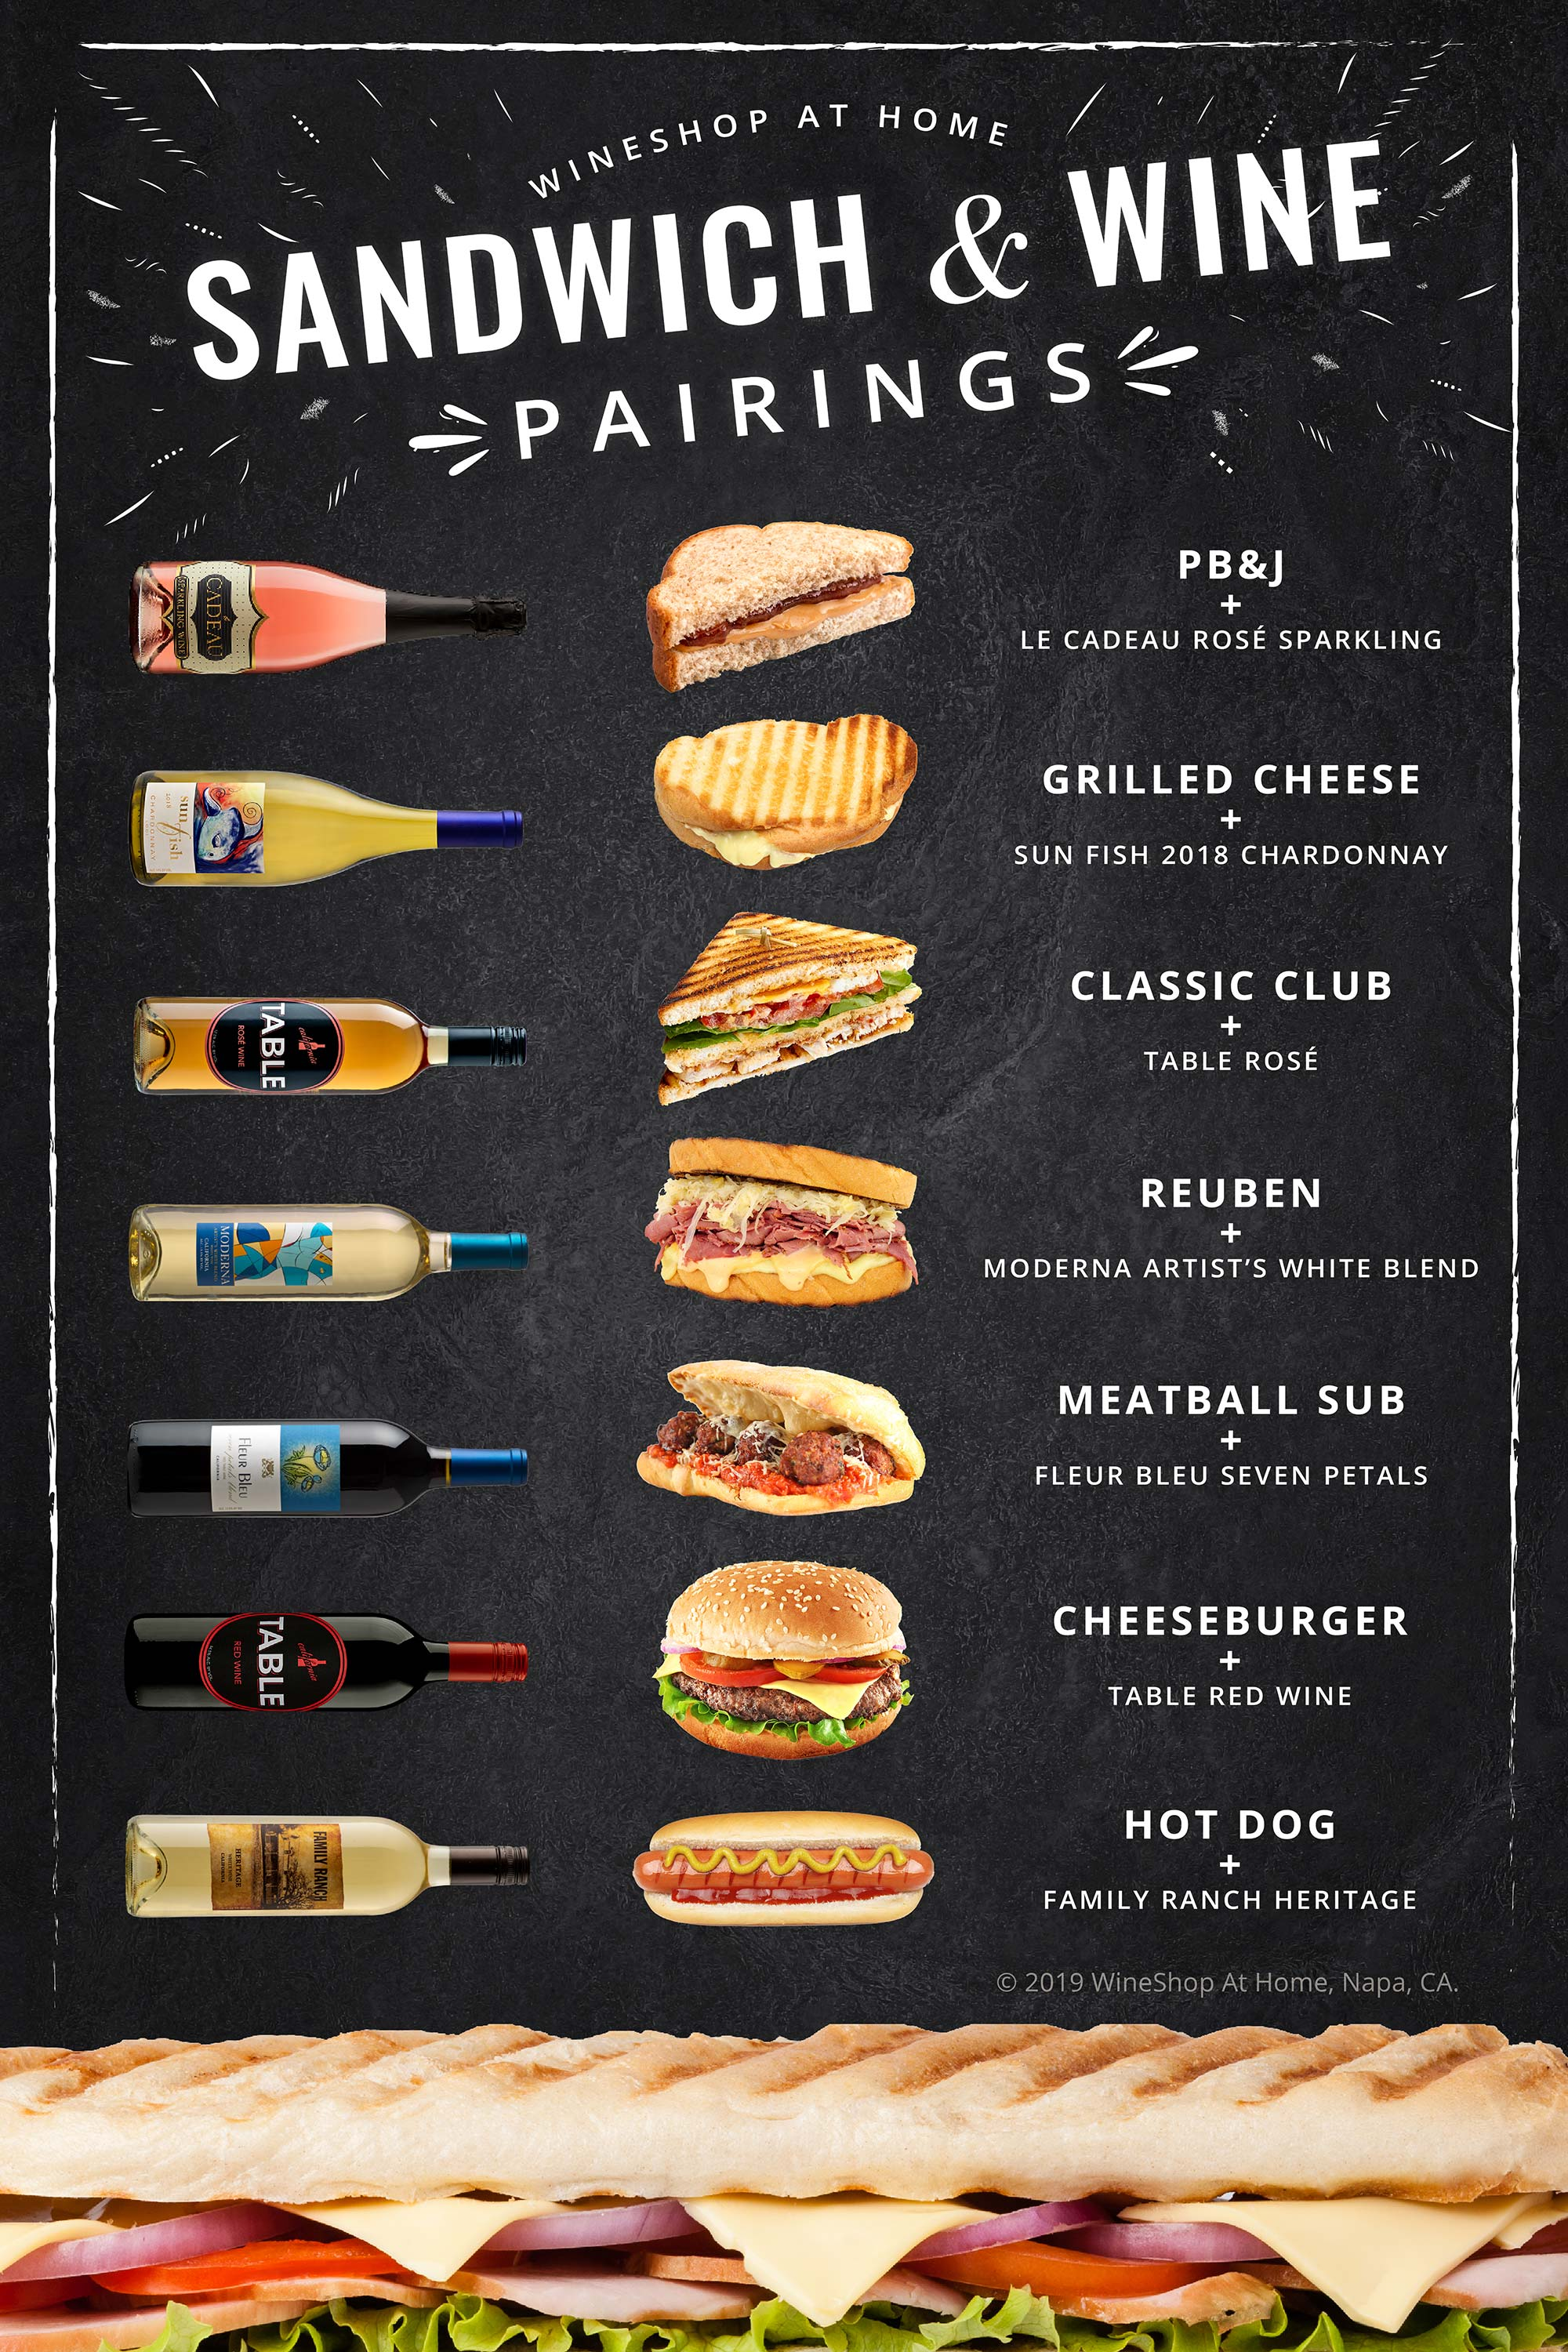 WineShop At Home Sandwich & Wine Pairings